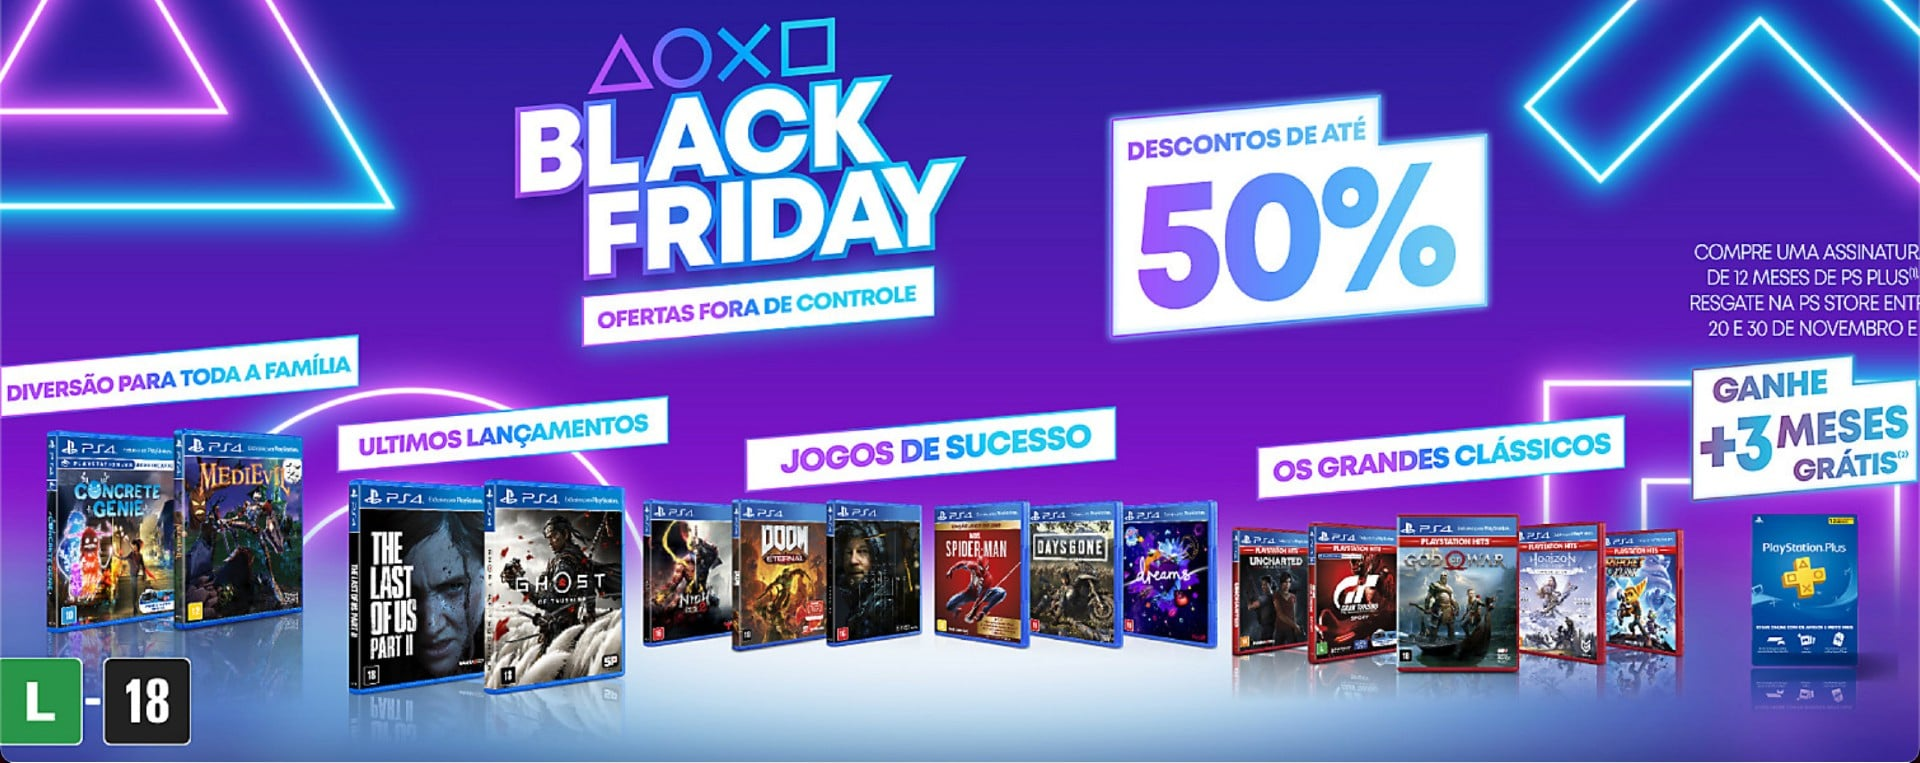 Black Friday - varejo